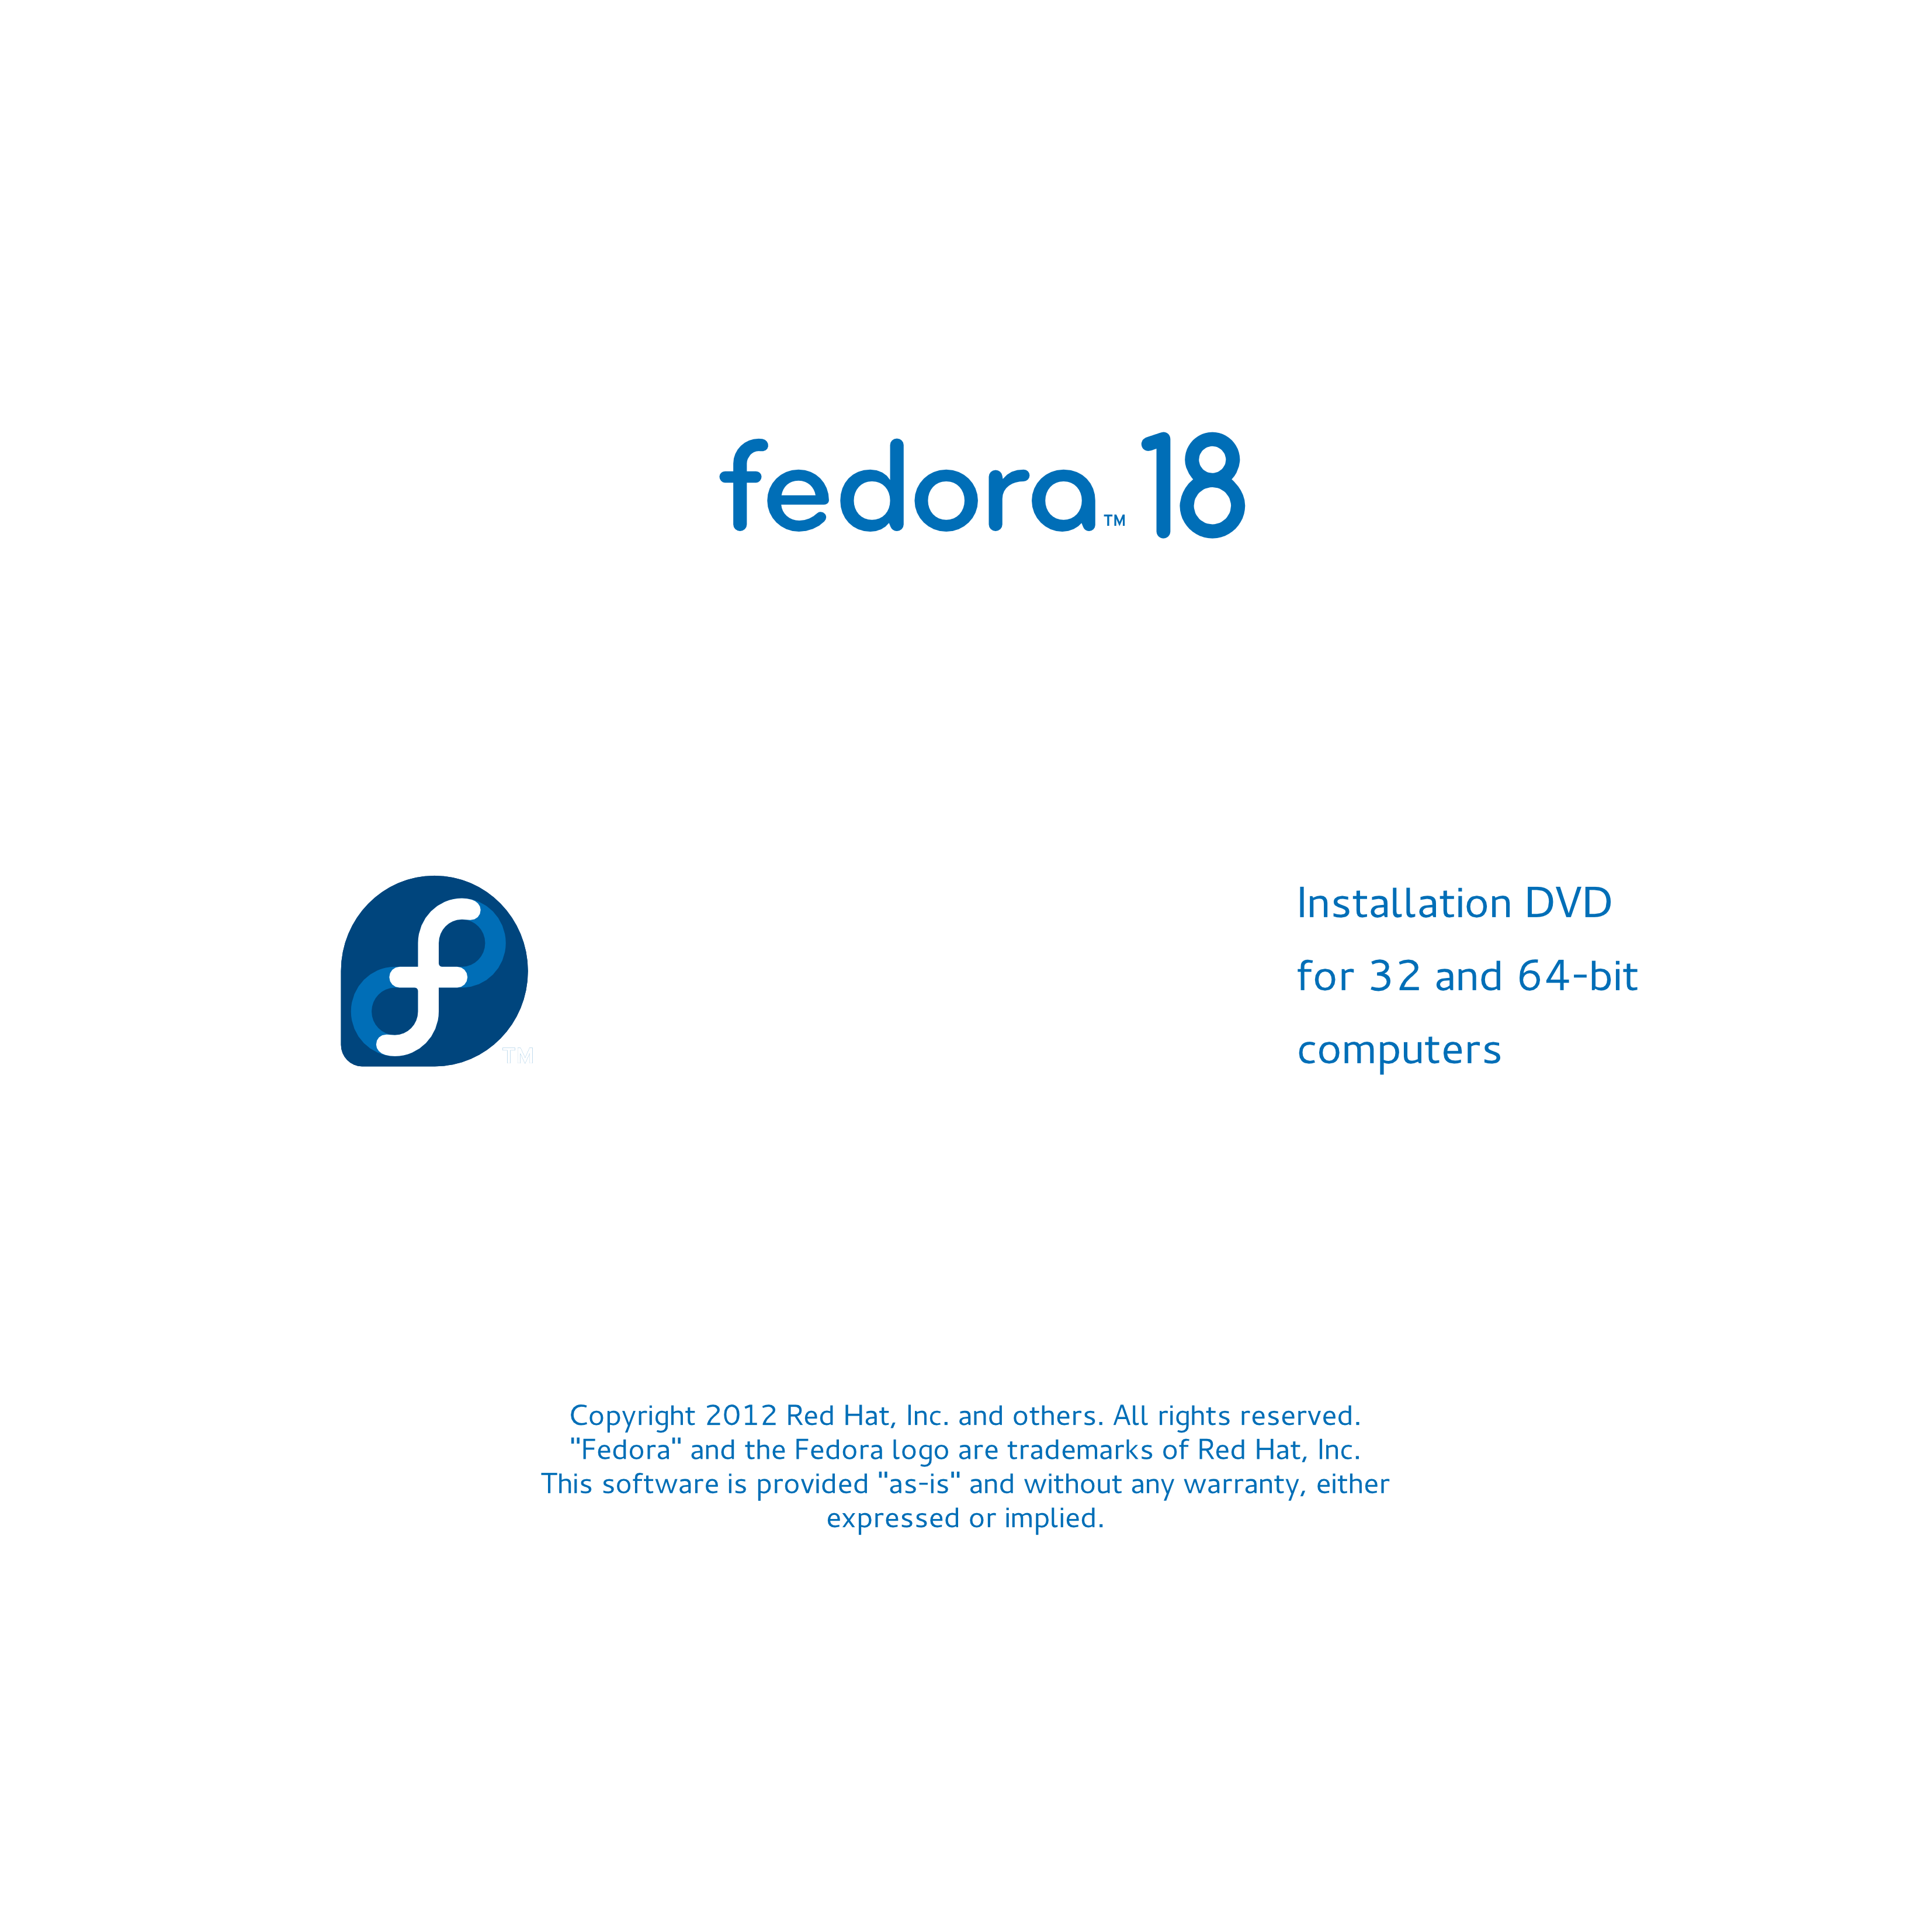 File:Fedora-18-dvd-32-and-64.png